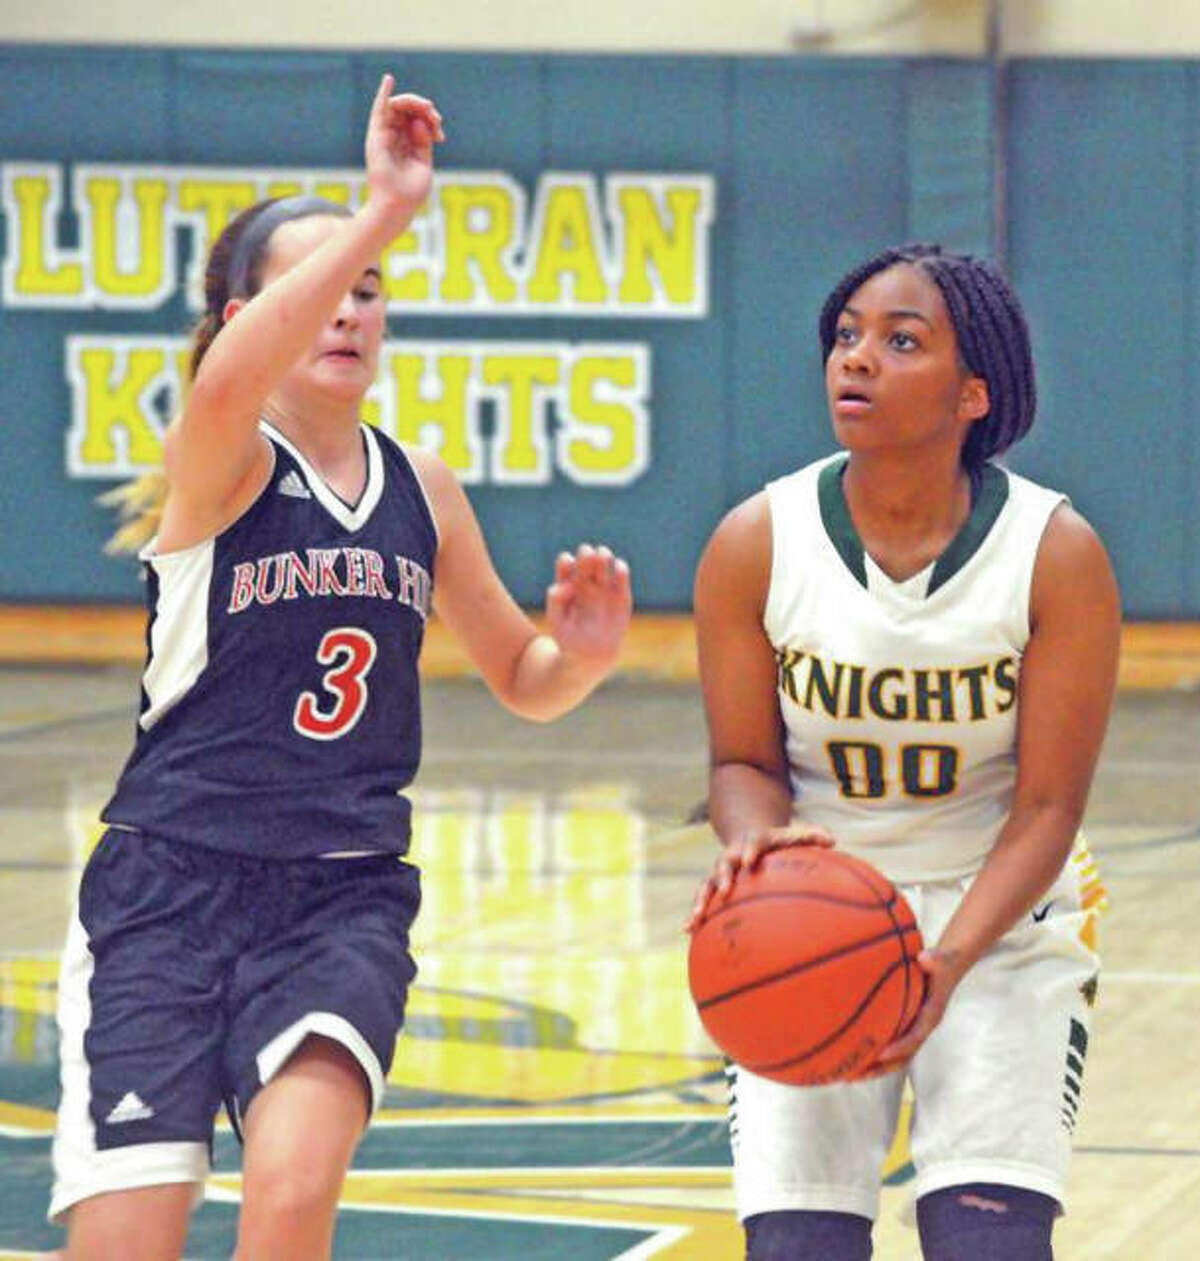 Metro East Lutheran's Destiny Williams (right) looks to shoot while Bunker Hill's Brylie Chrisman defends during Friday's game Prairie State Conference girls basketball game at Hooks Gym in Edwardsville. The Minutemaids got a career-high 35 points from Mallory Schwegel in a 68-49 victory.